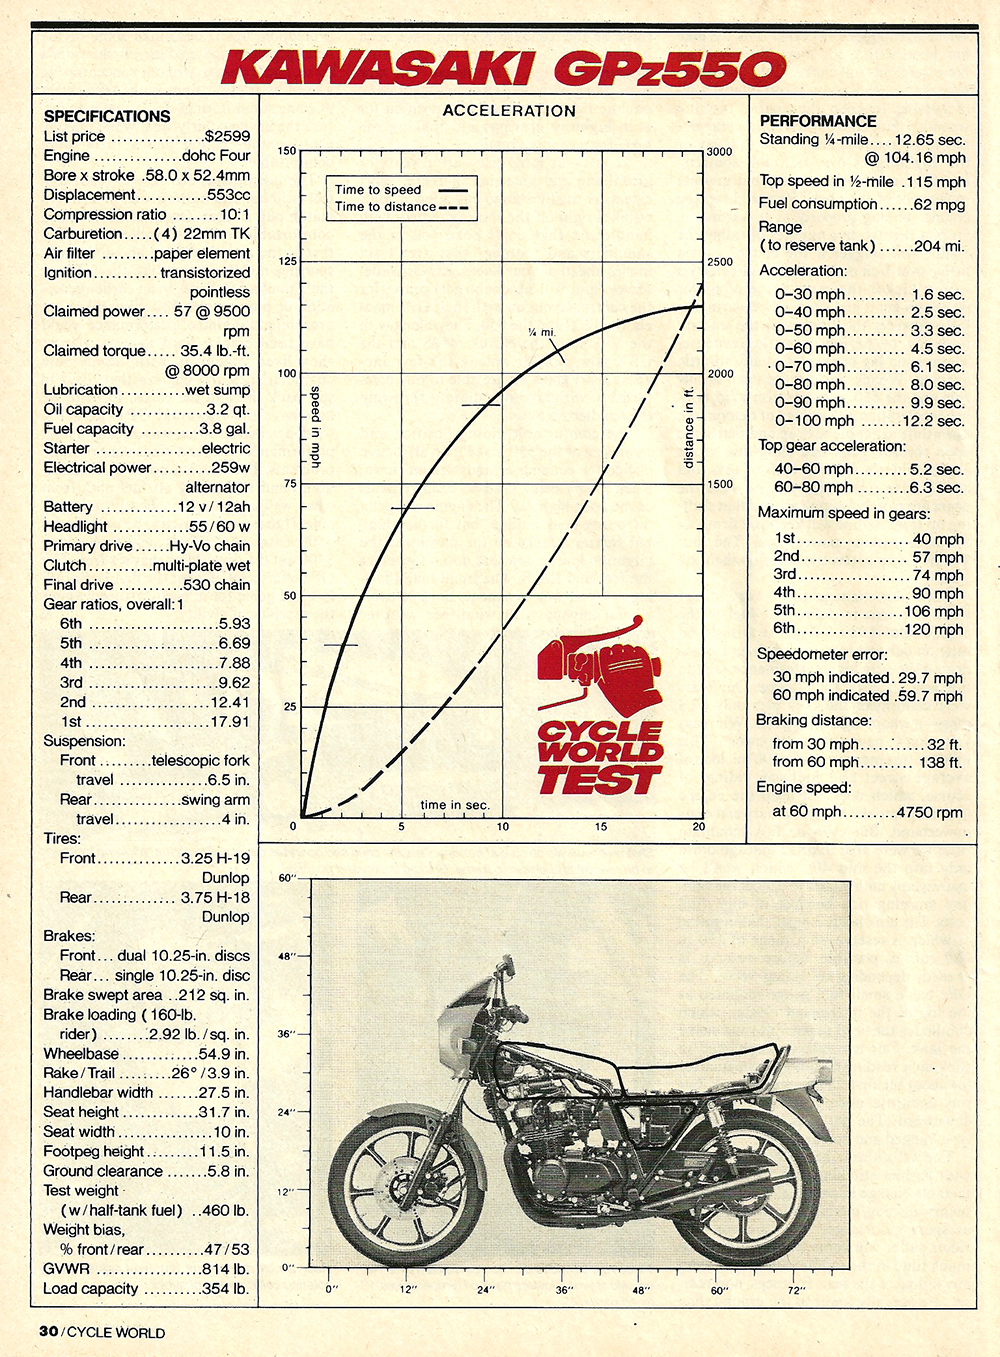 1981 Kawasaki GPz 550 road test 7.jpg